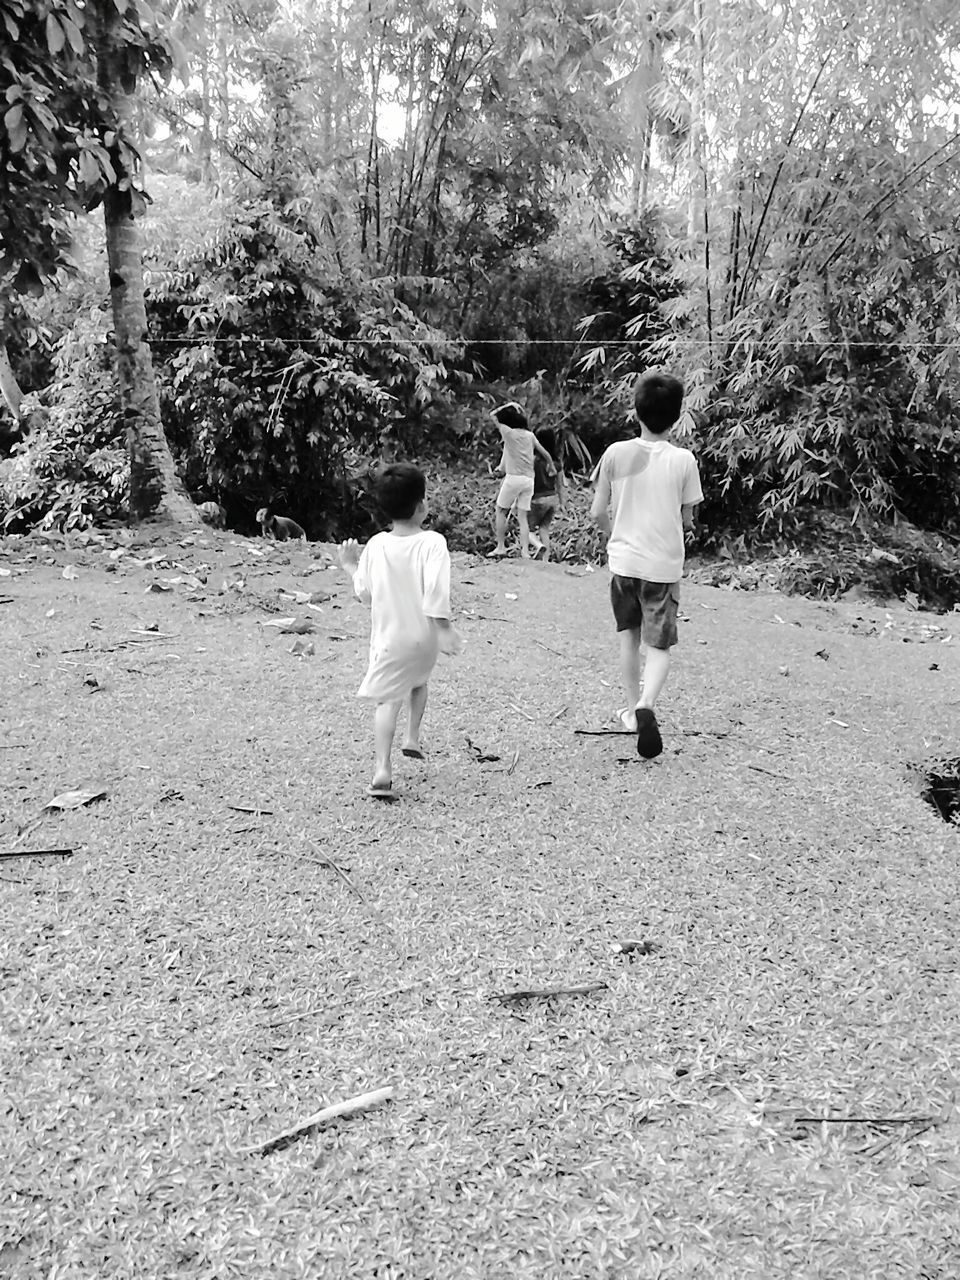 real people, rear view, tree, full length, childhood, togetherness, walking, boys, men, two people, leisure activity, nature, playing, outdoors, day, growth, lifestyles, standing, mammal, adult, people